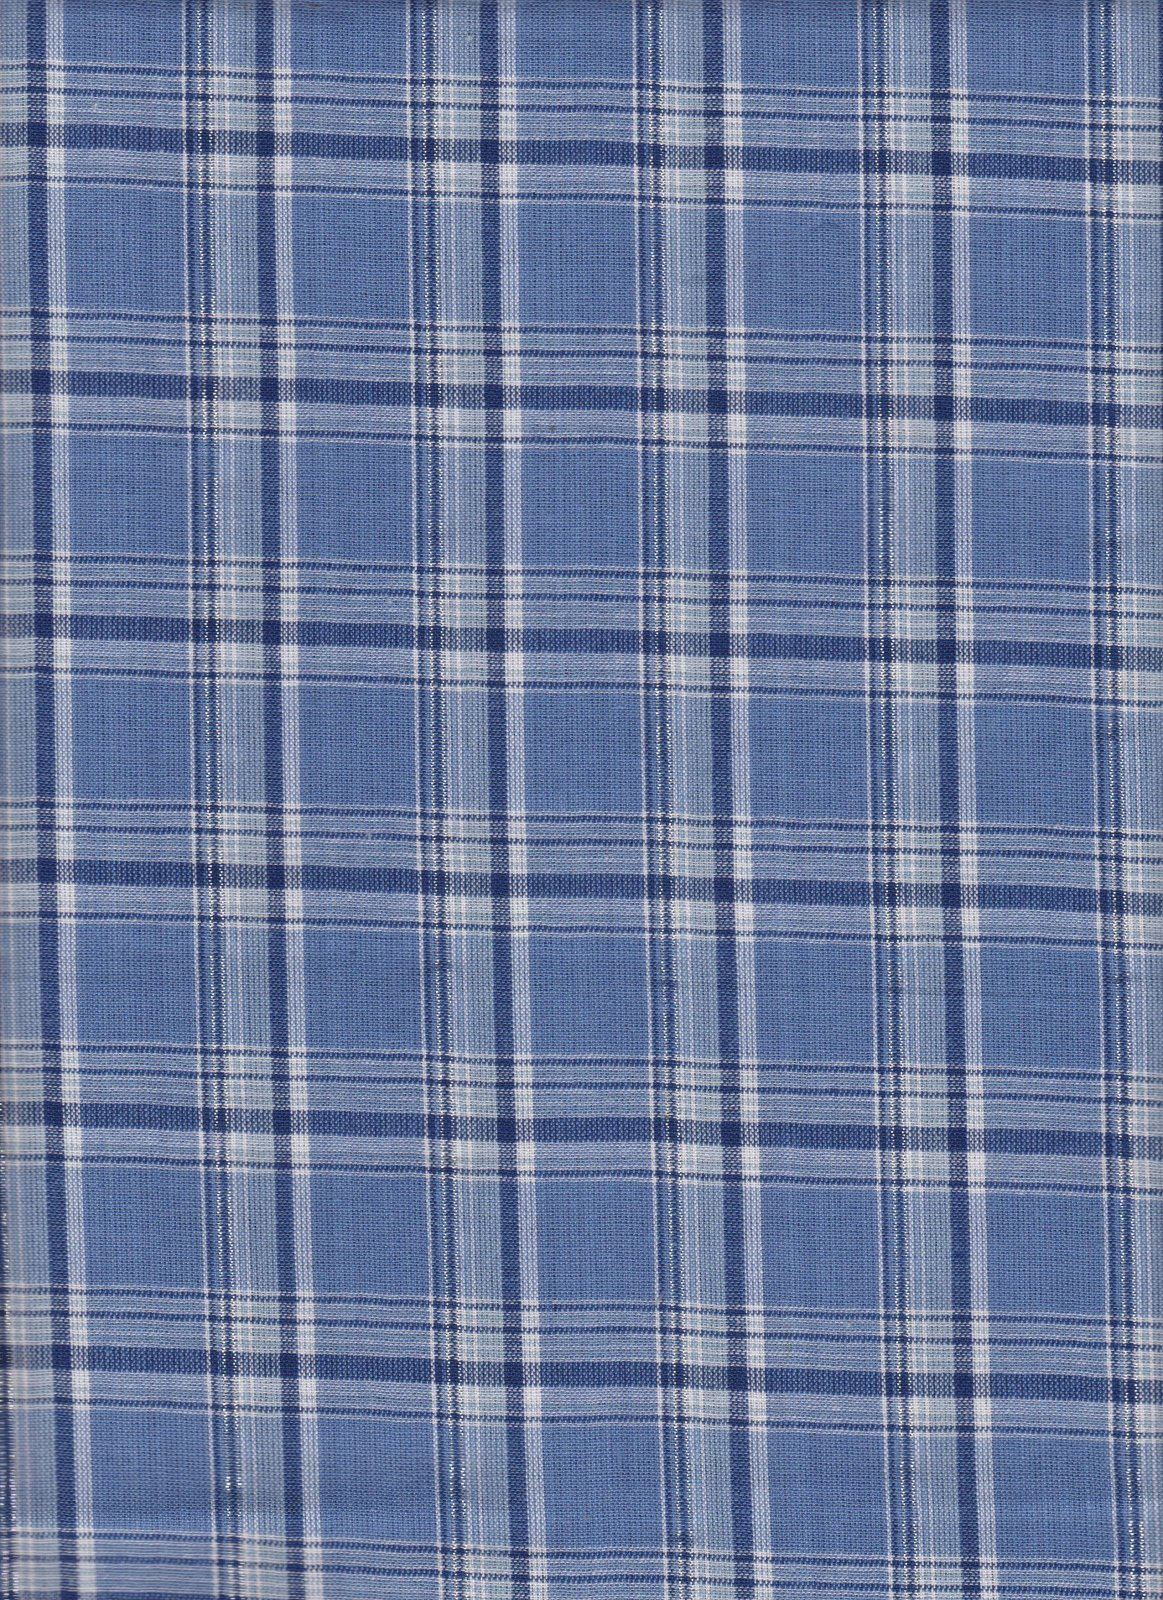 TC- Indigo Range INR-005 Box Plaid wSilver Metallic